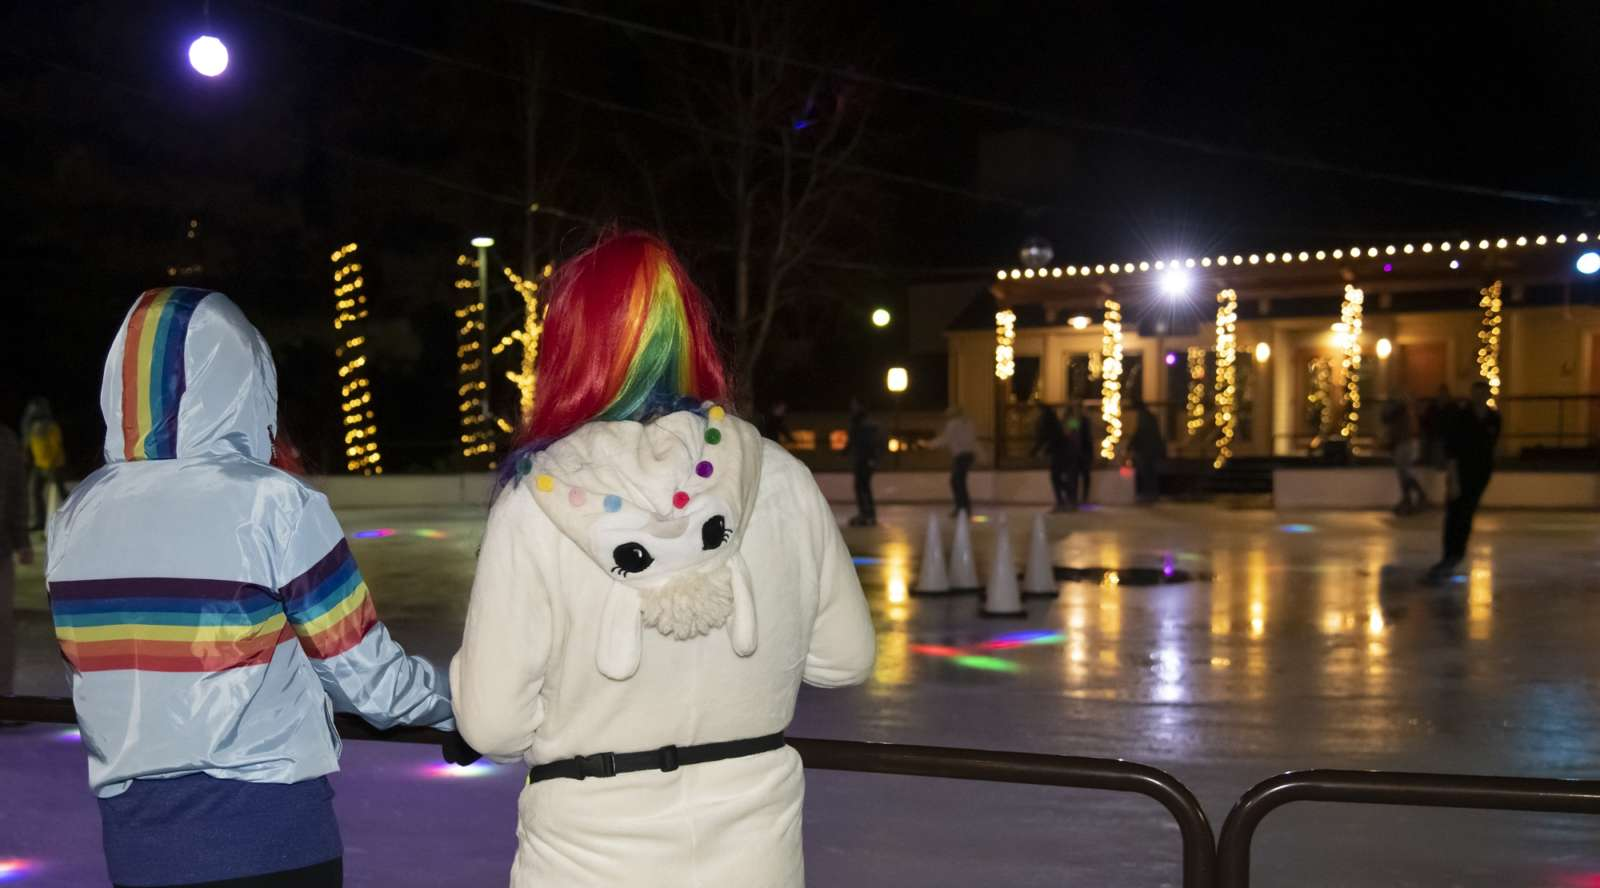 Ice skating at Seventh Mountain for PrideFest